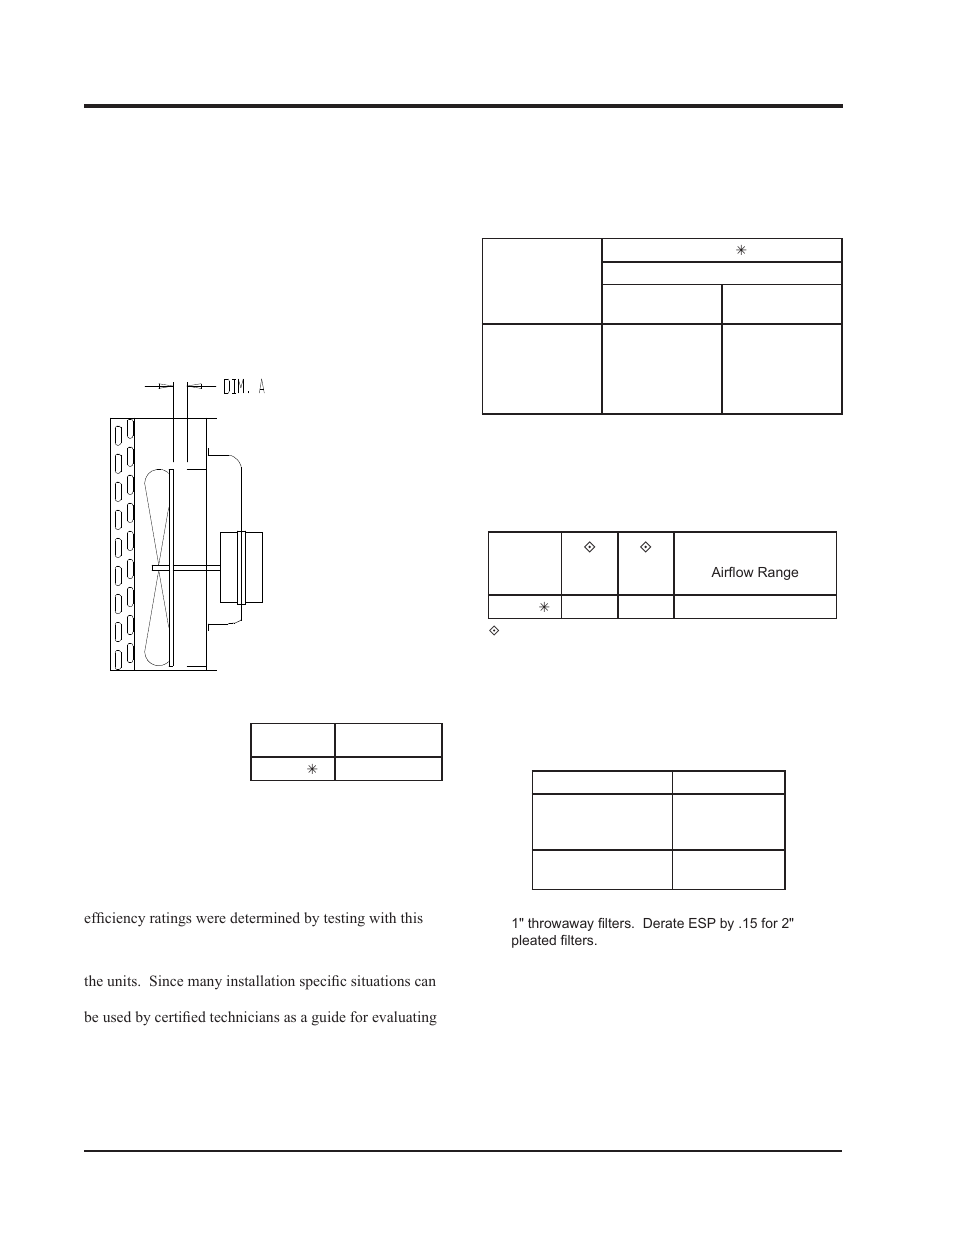 Bard Air Conditioner Wiring Diagram : Bard furnace limit switch wiring diagram simple steam